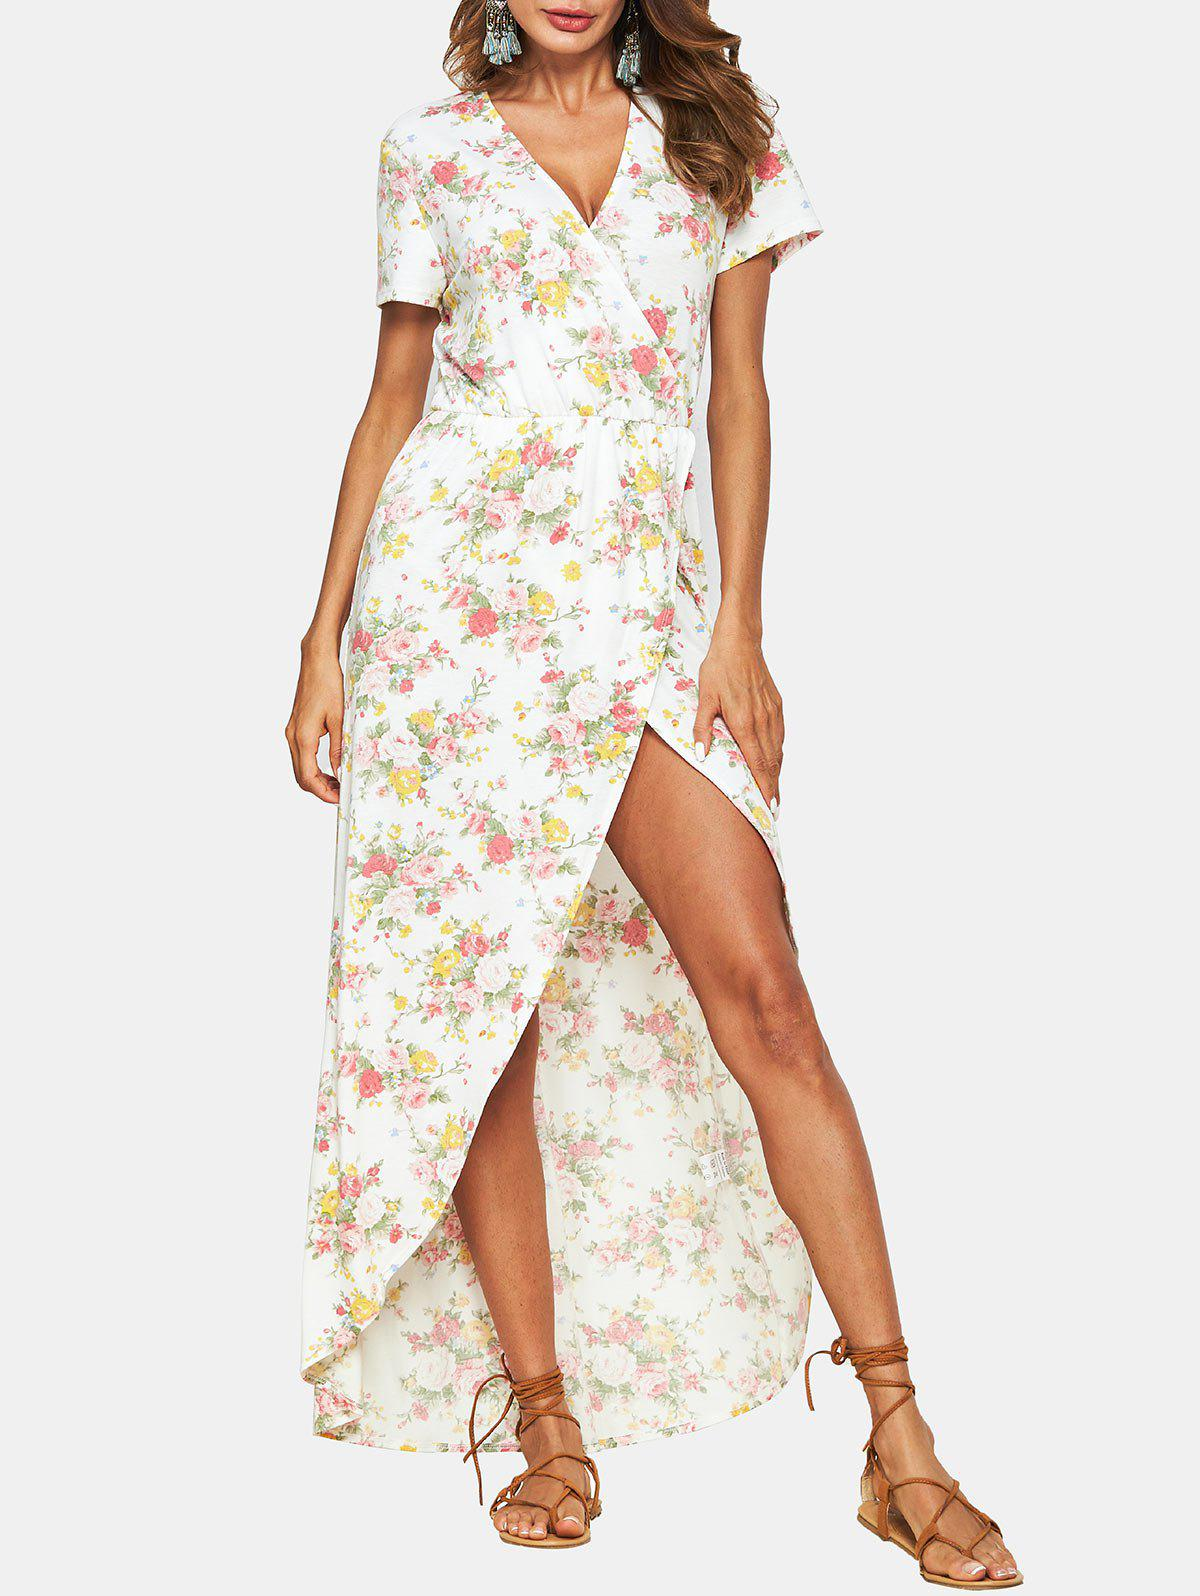 Unique Flower Low Cut Asymmetrical Dress